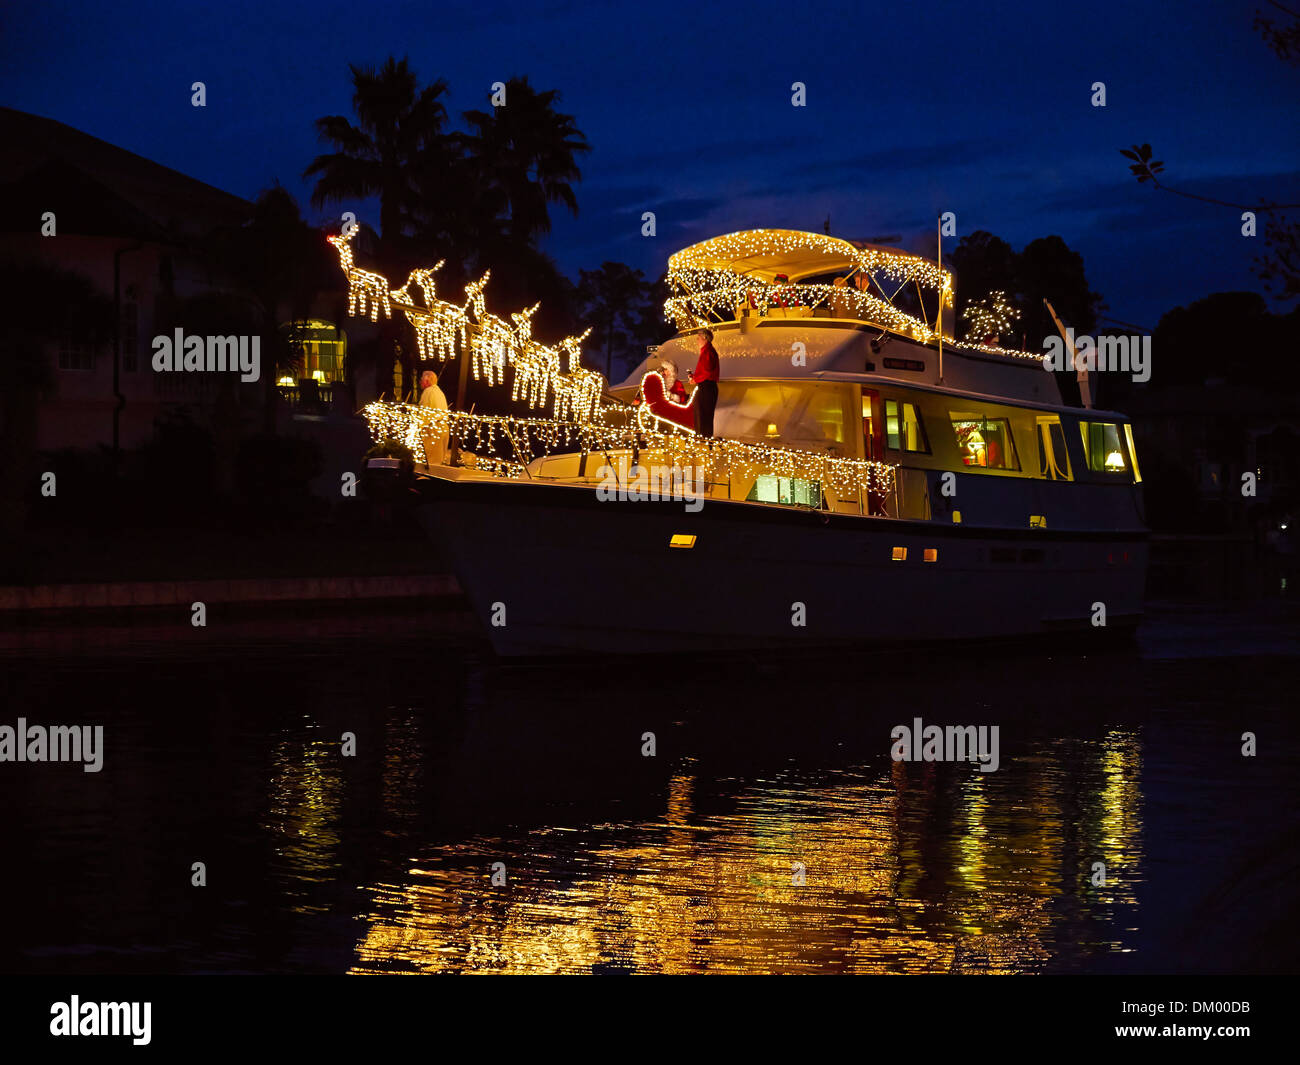 Christmas Boat Decorations.Christmas Decorations On A Boat In South Carolina A Large